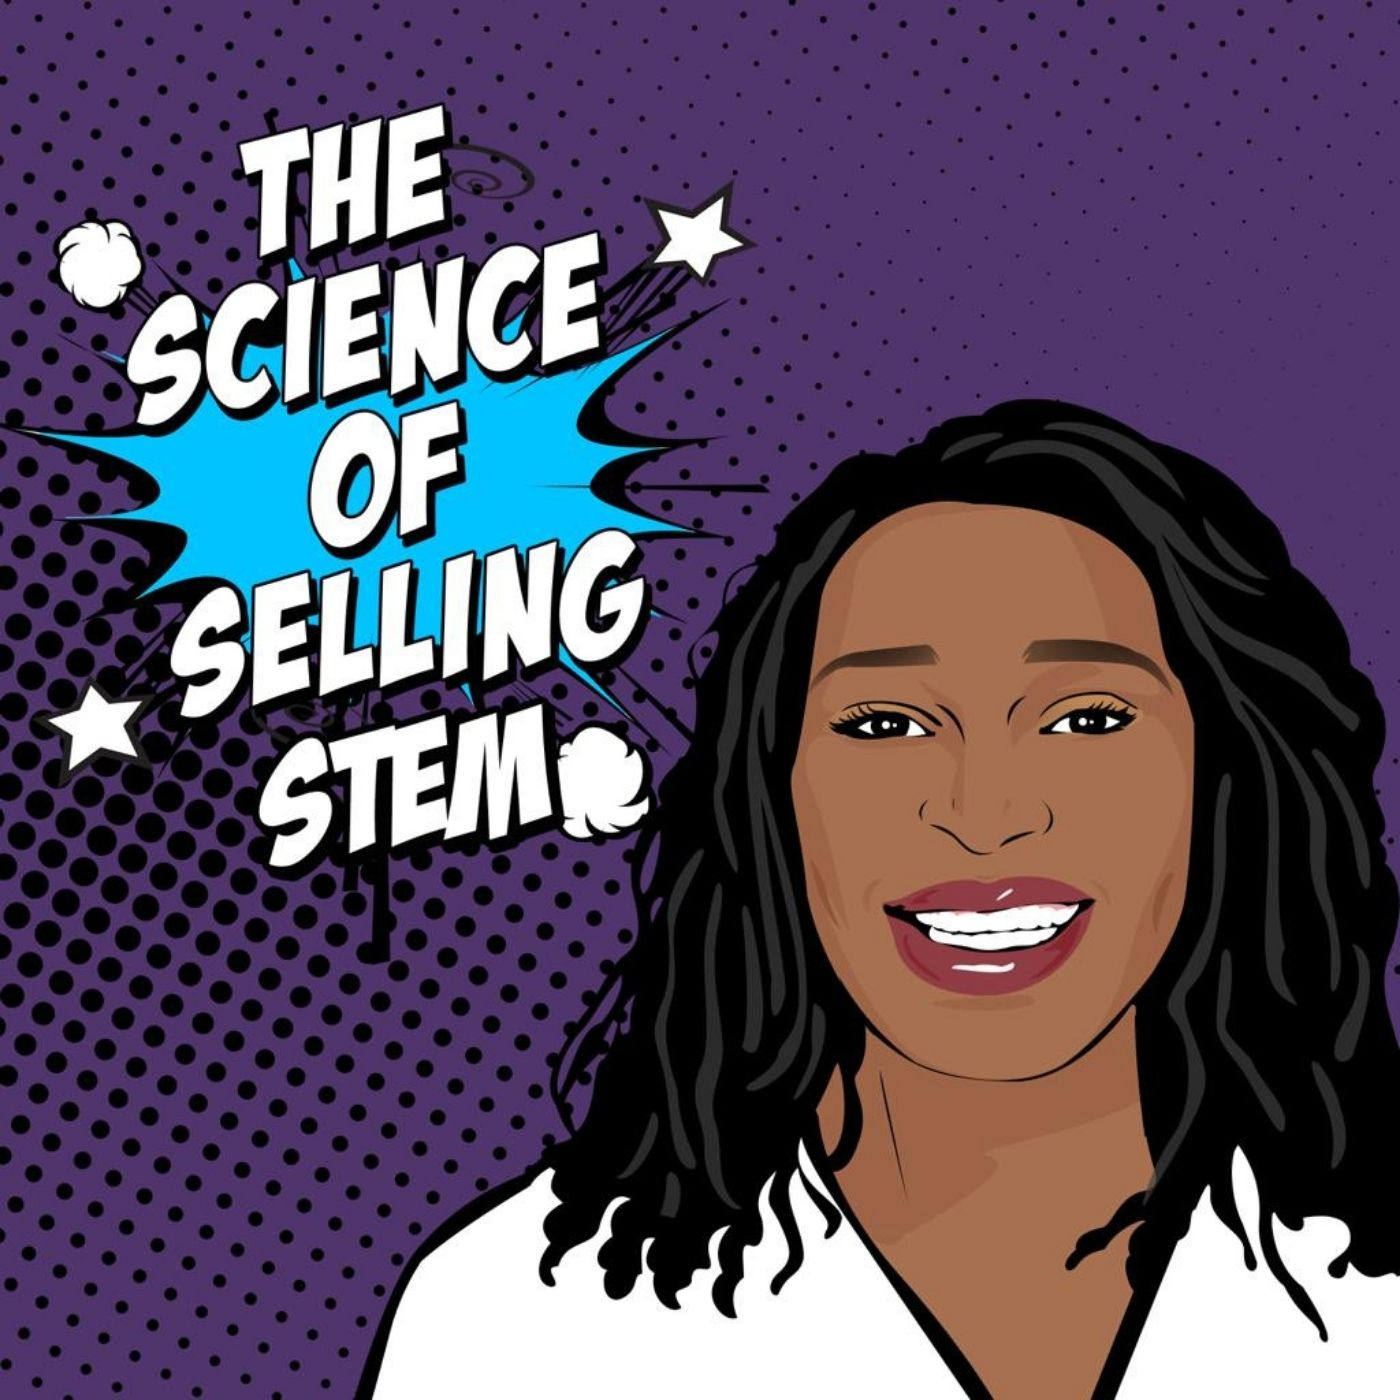 Artwork for podcast The Science of Selling STEM